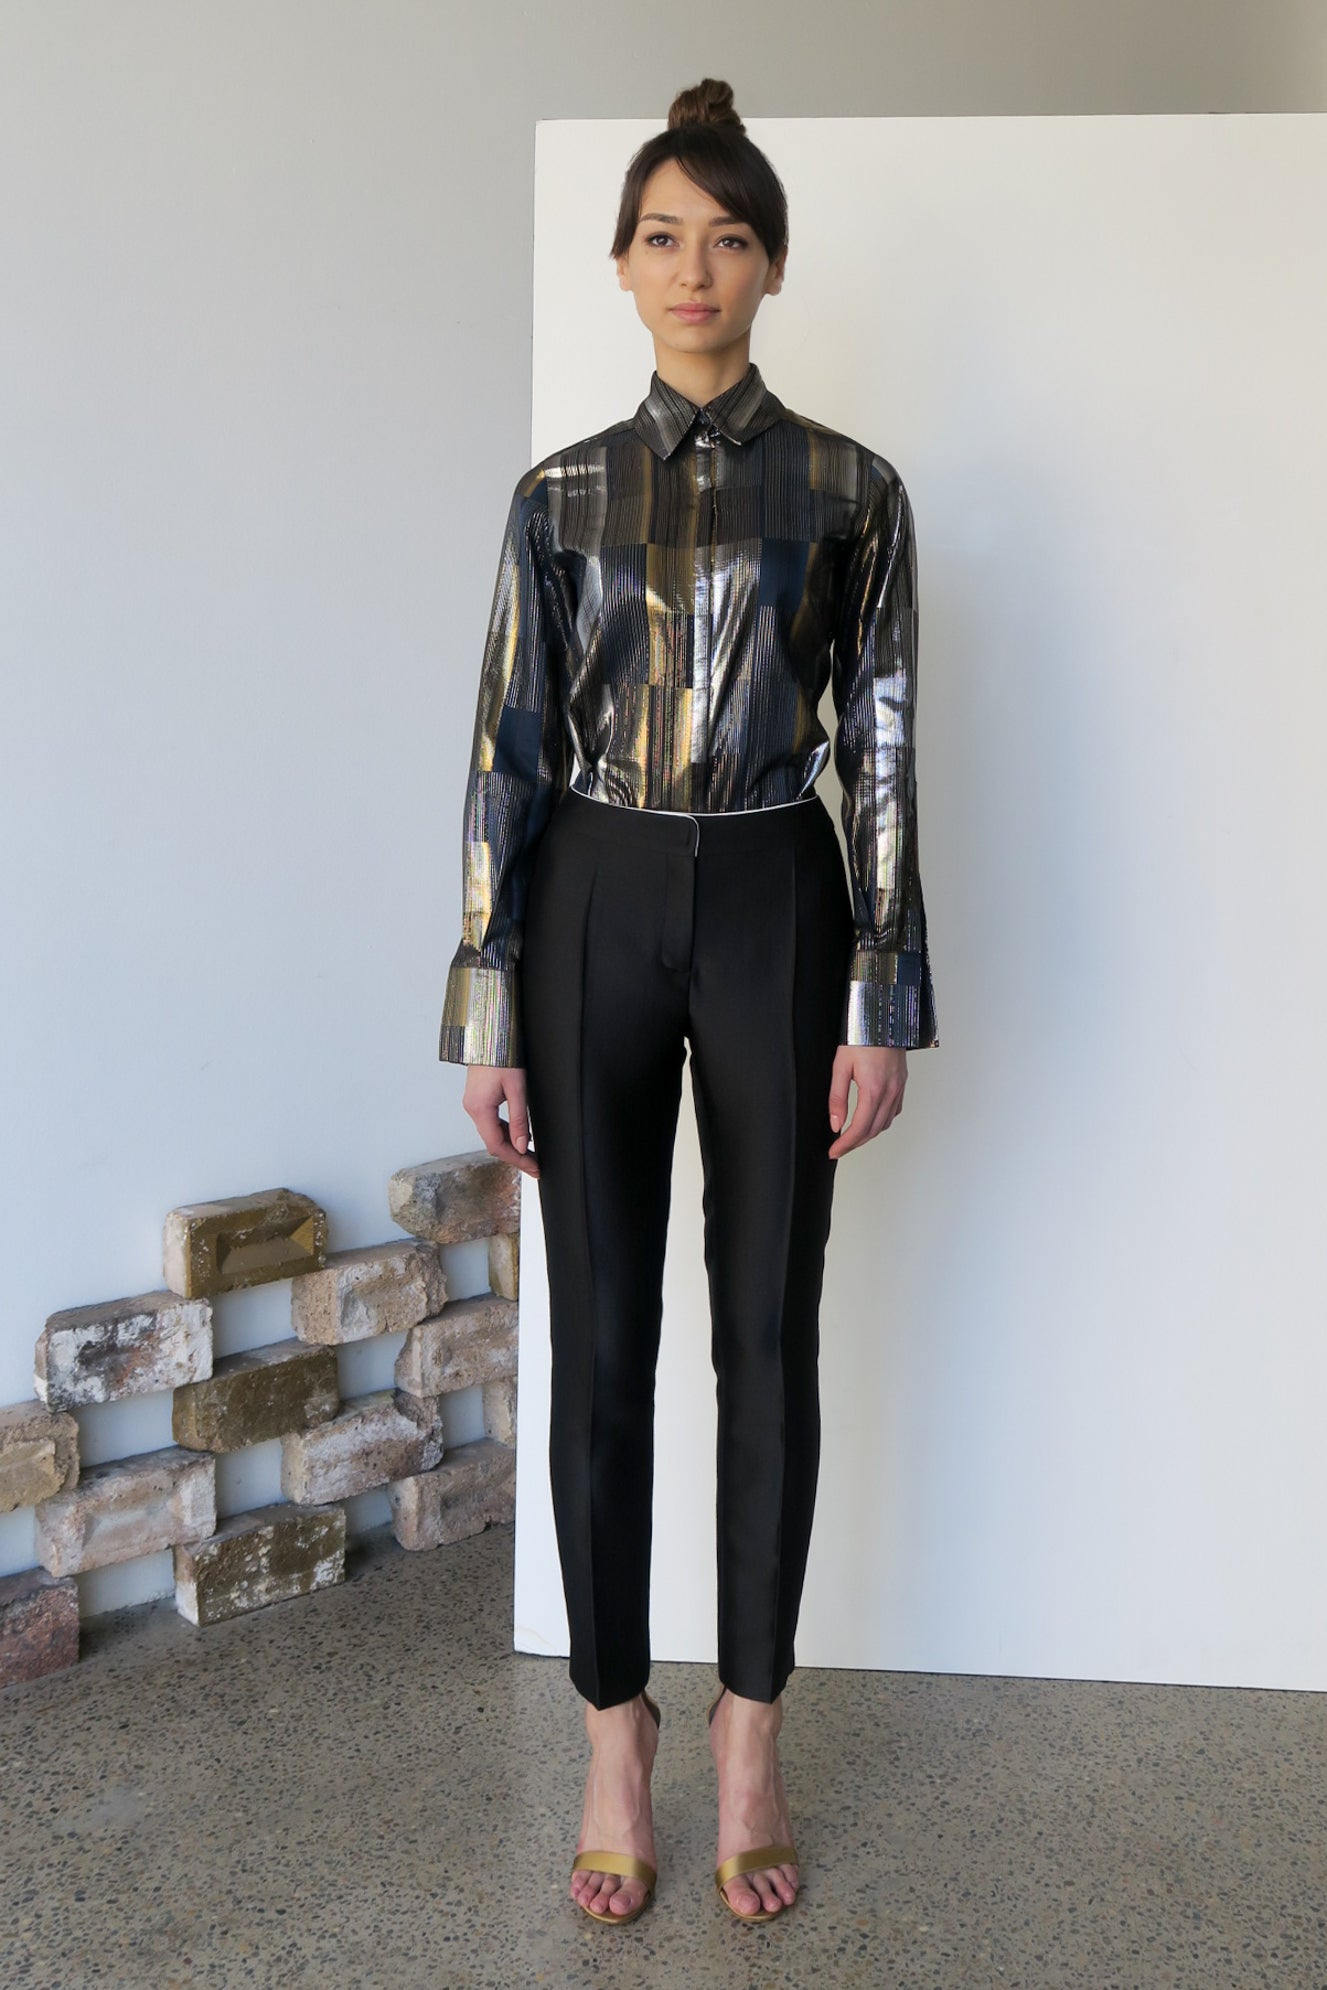 Aeropshere Metallic Shirt | CARL KAPP